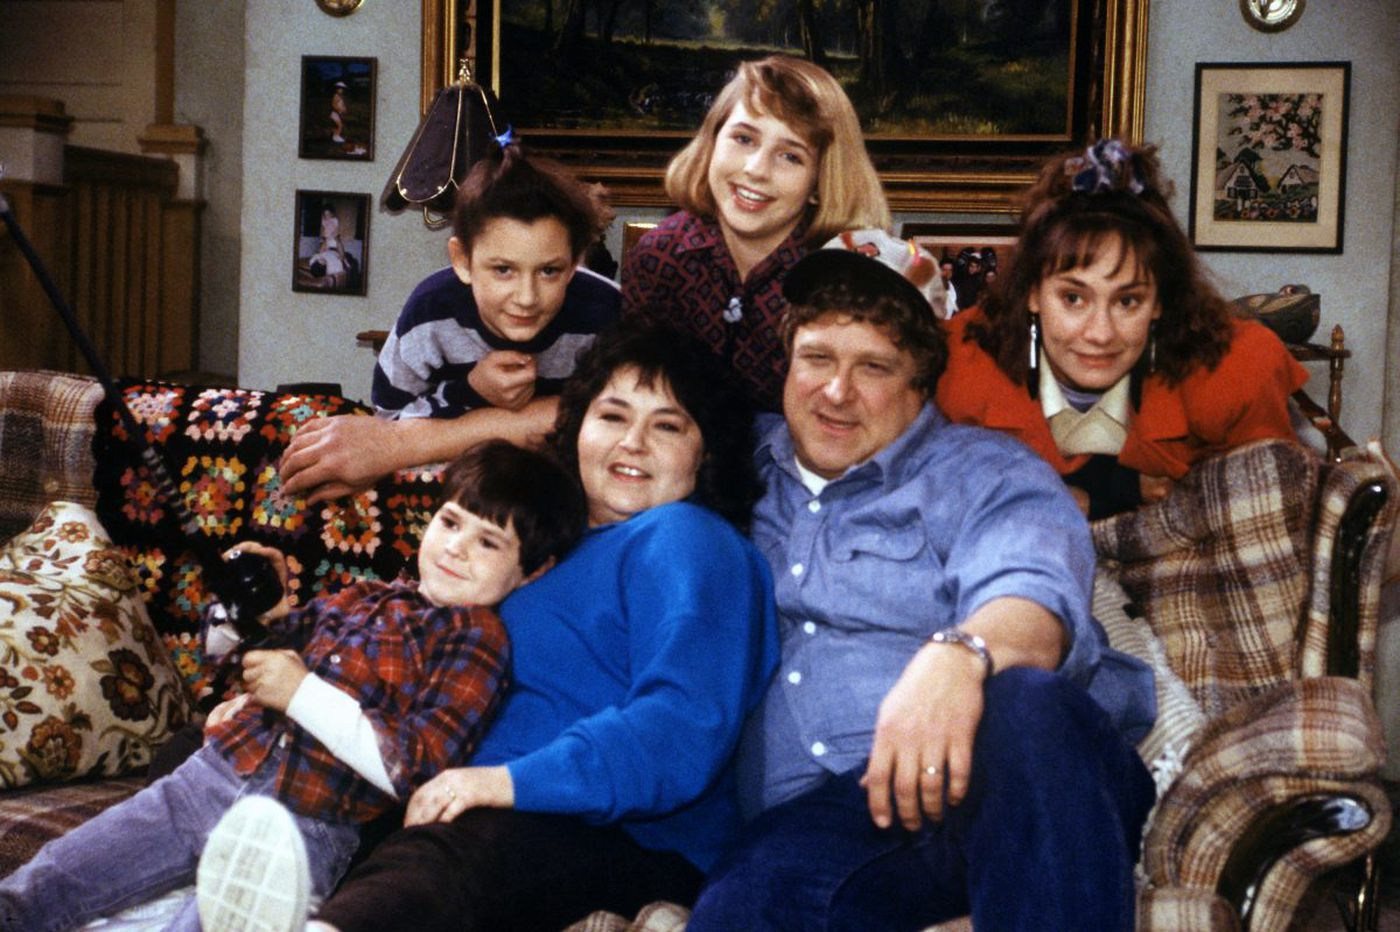 When 'Roseanne' returns, will today's working class recognize her?